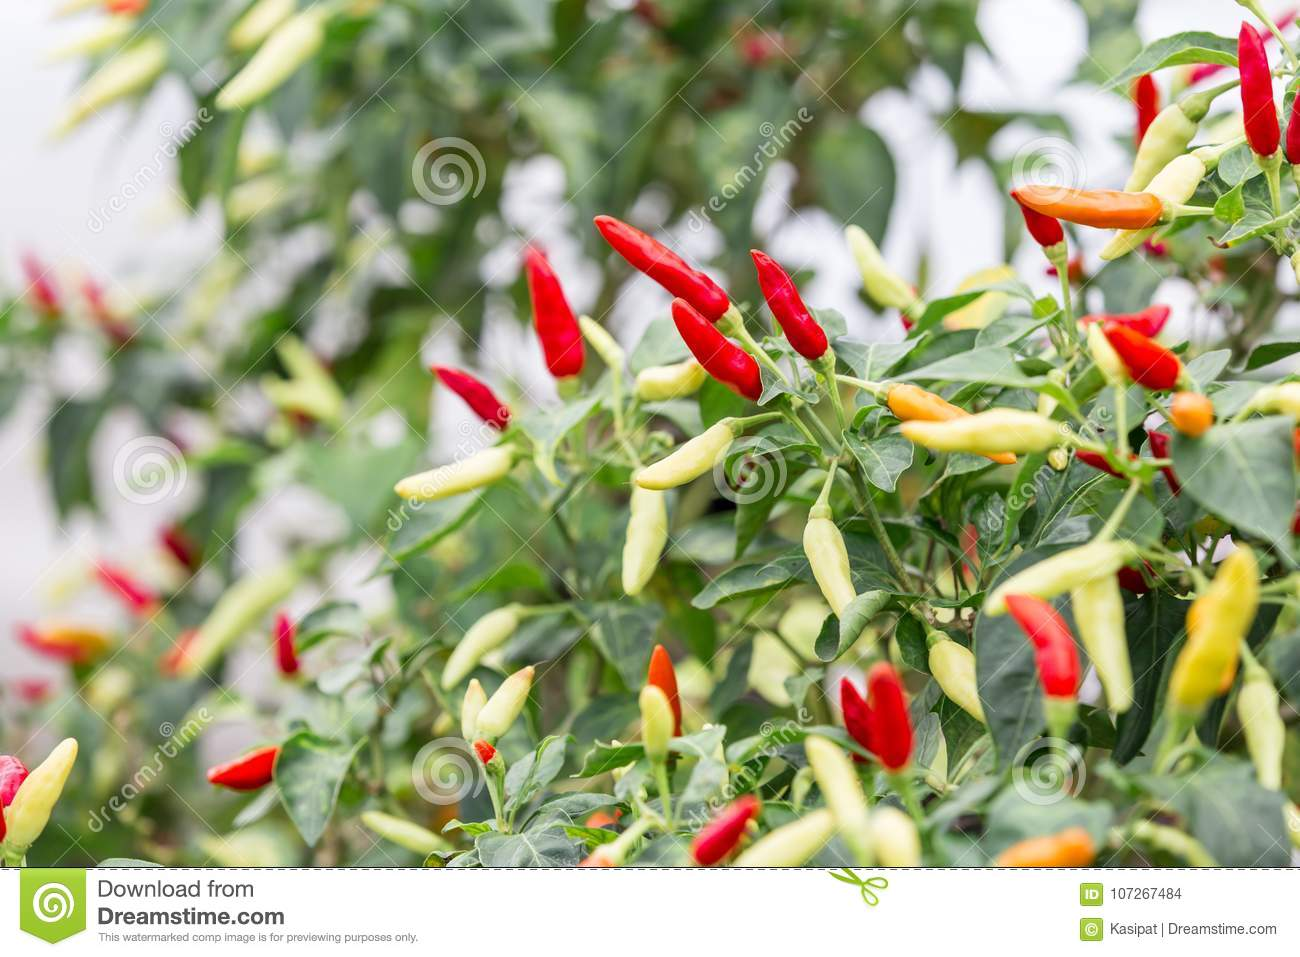 Chili Peppers Stock Photo Image Of Garden Farming 107267484